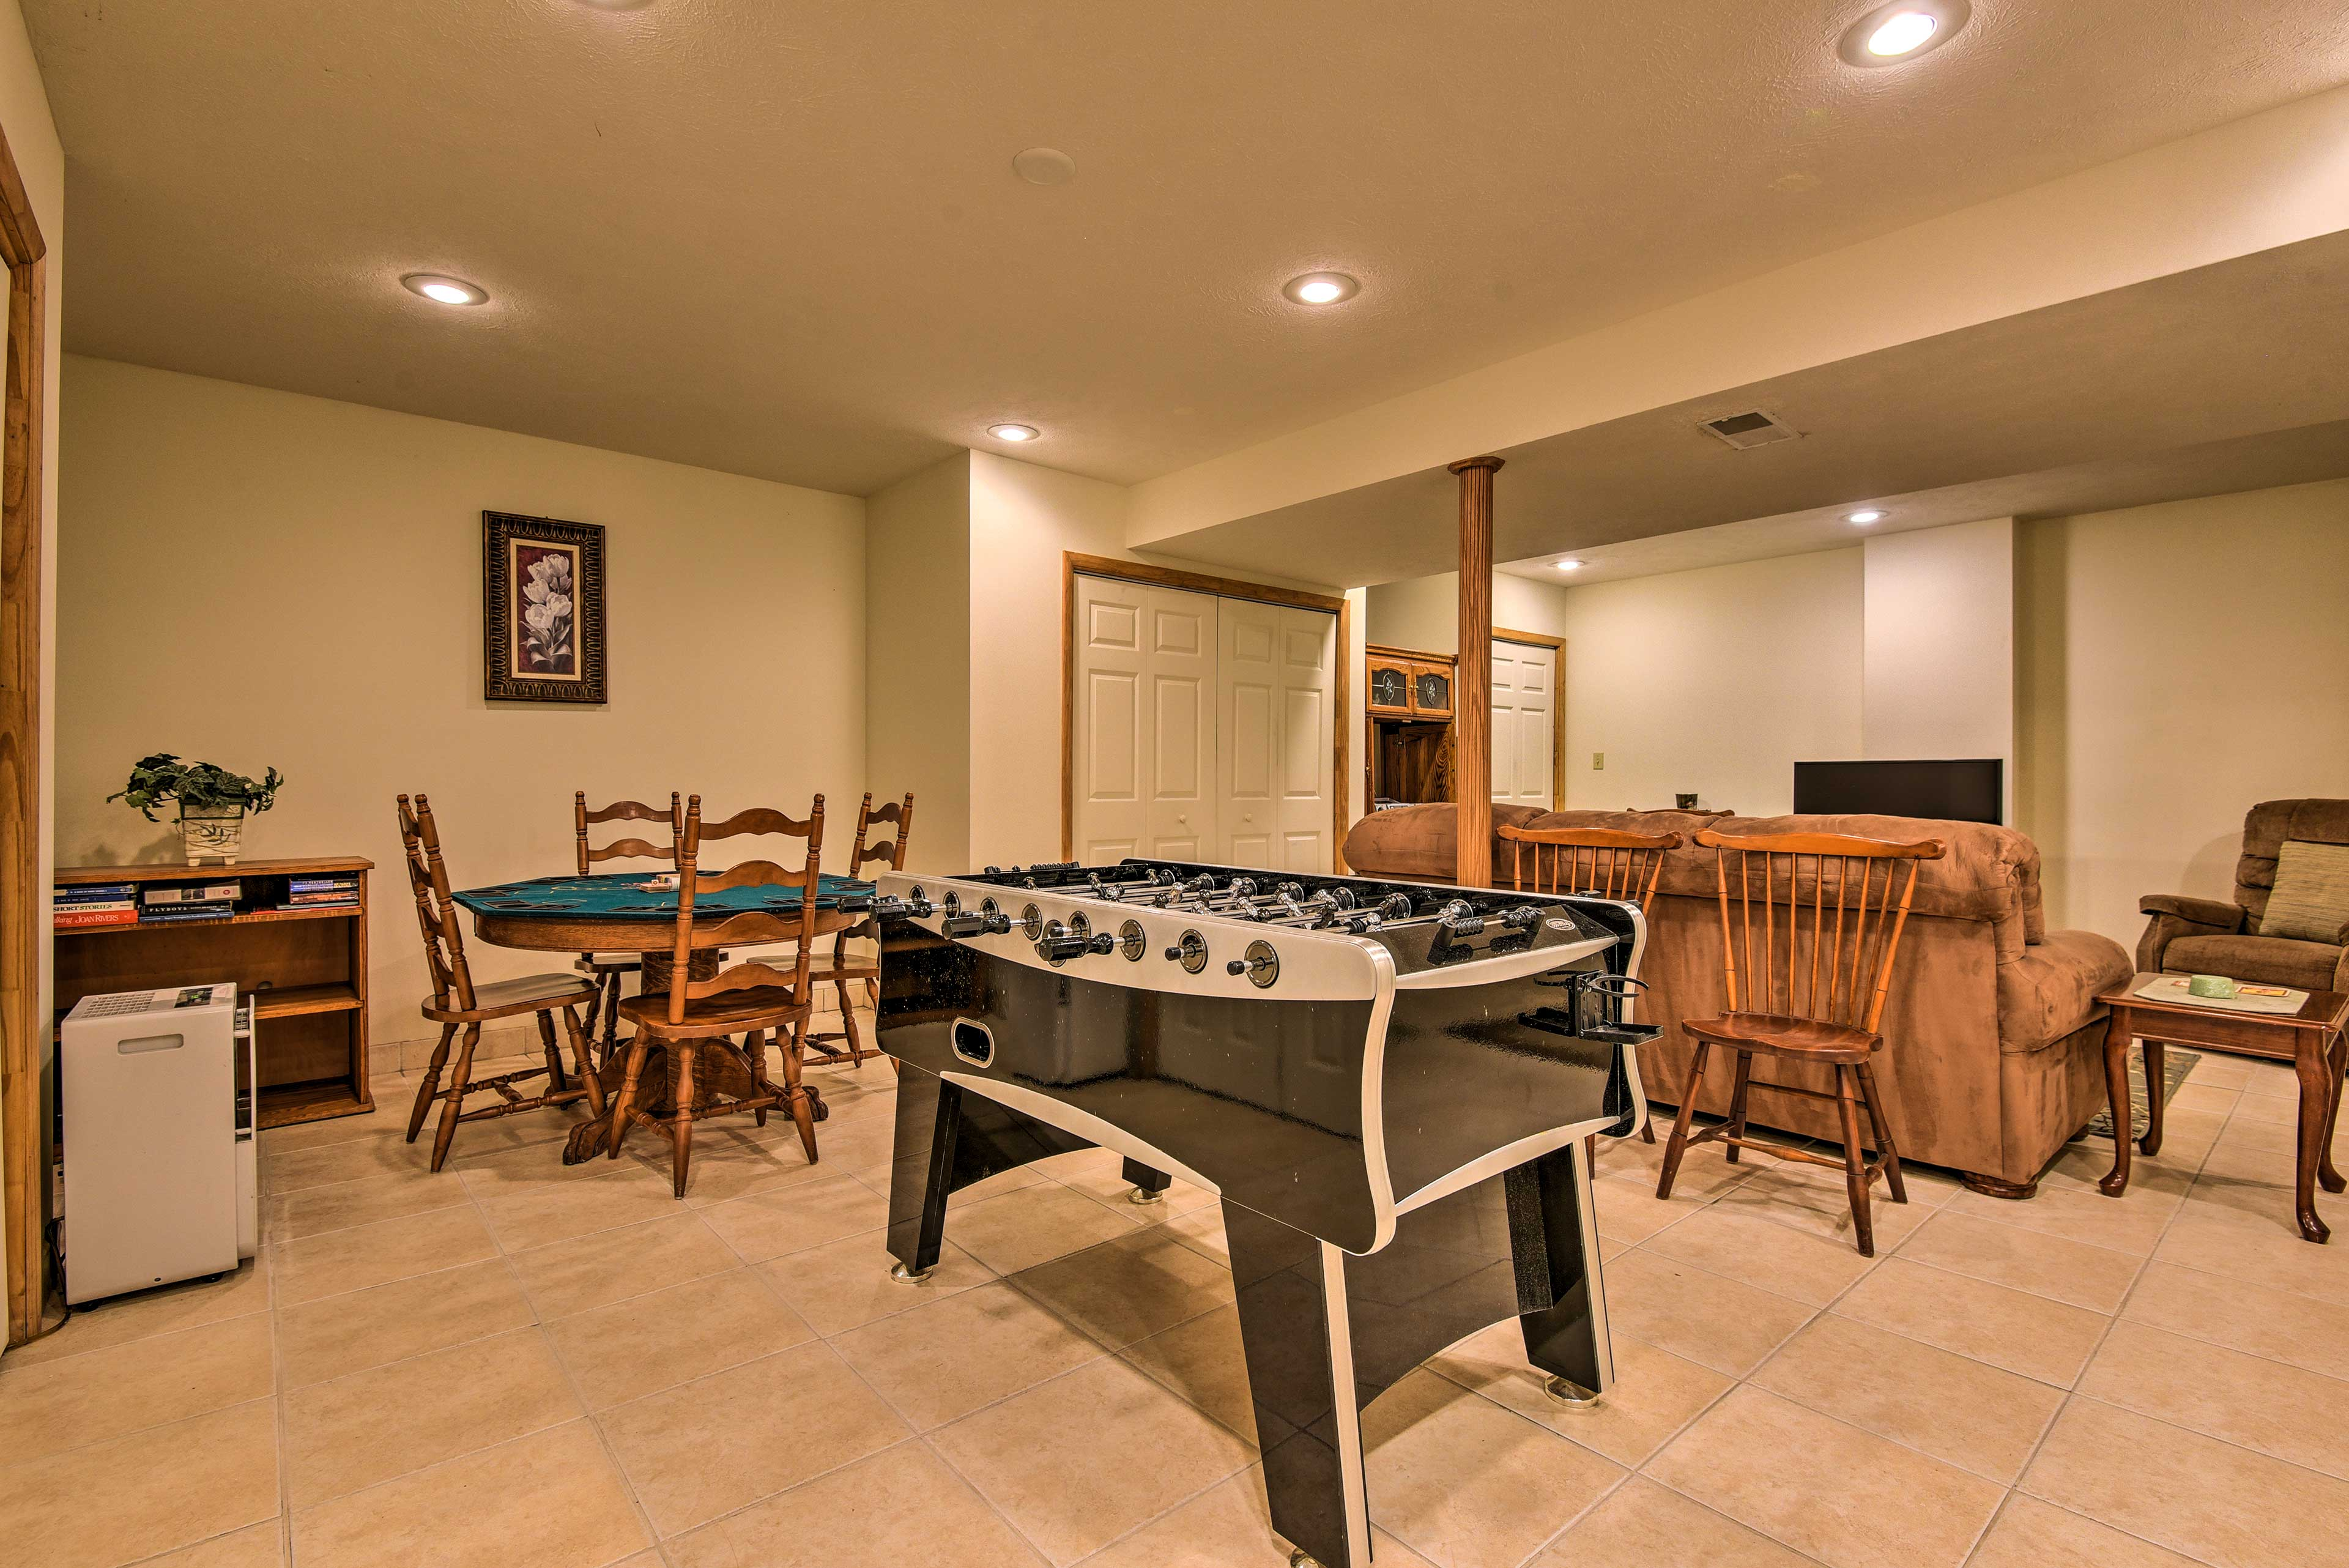 The rec room features a Foosball table!